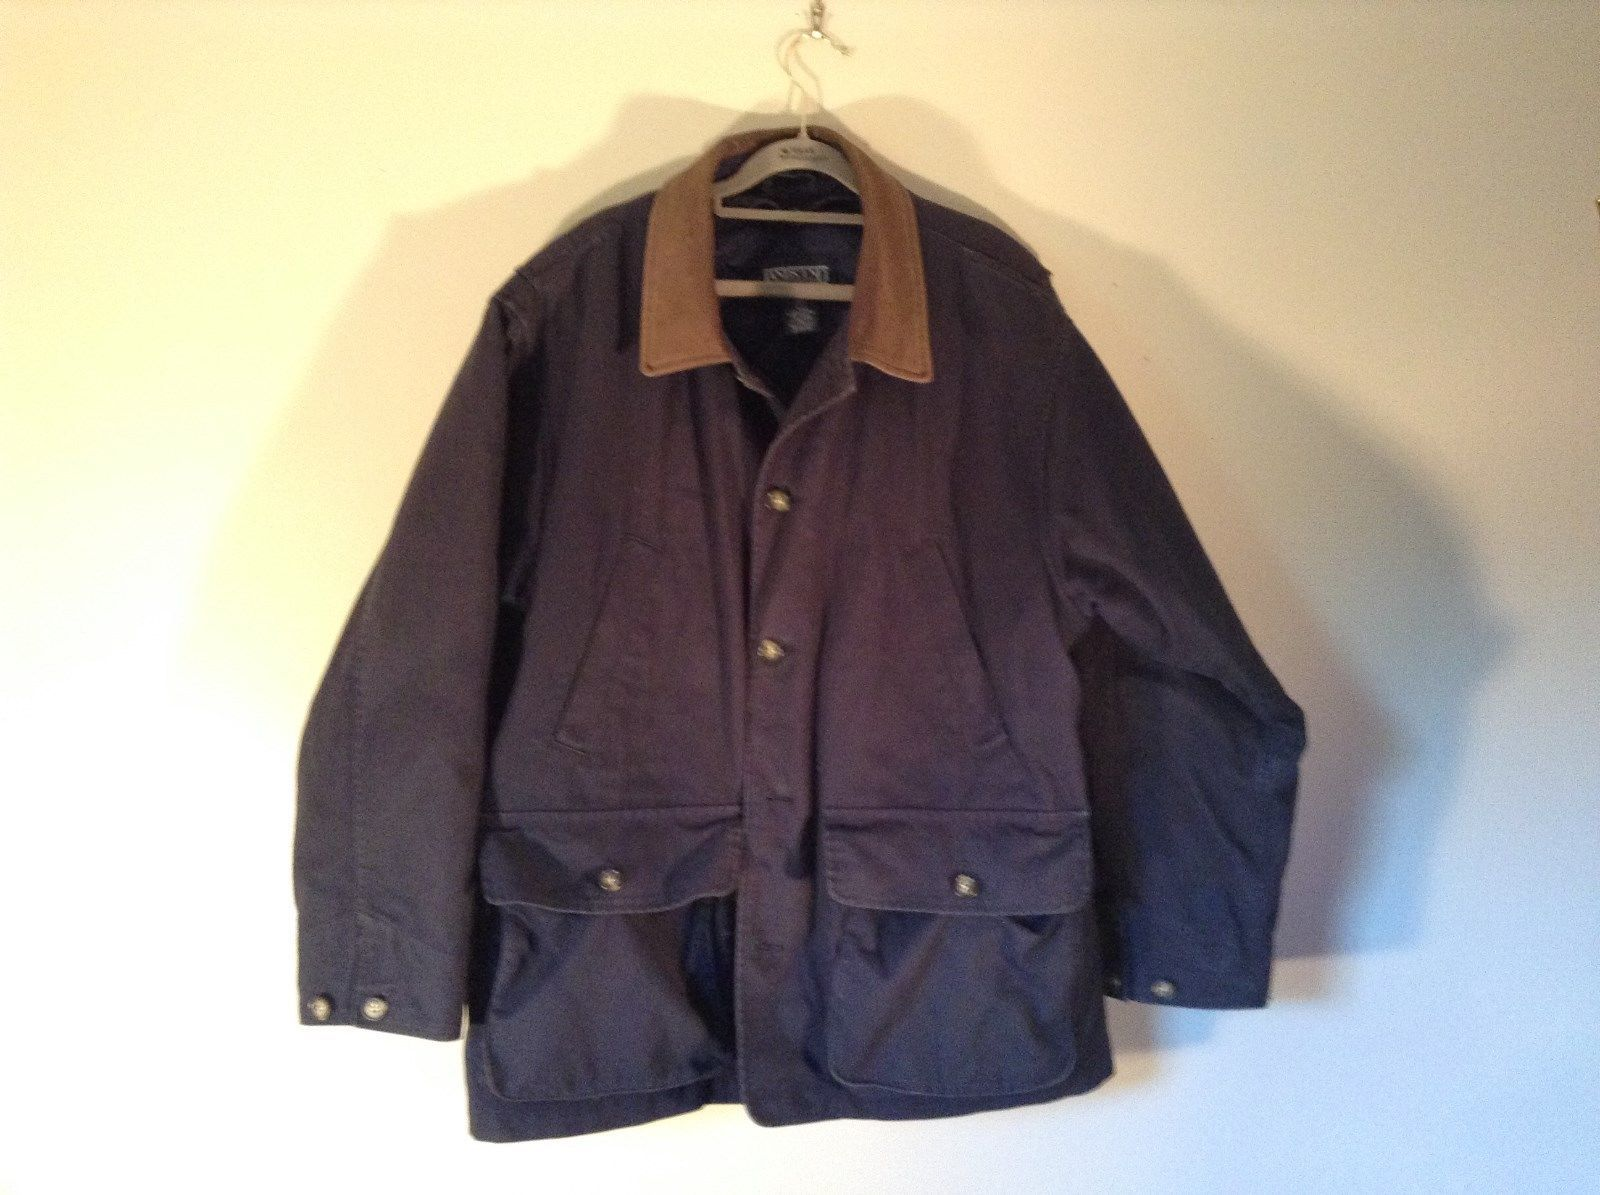 Warm Winter Dark Blue Coat Lands End Size L 42 to 44 Leather Trim Four Pockets